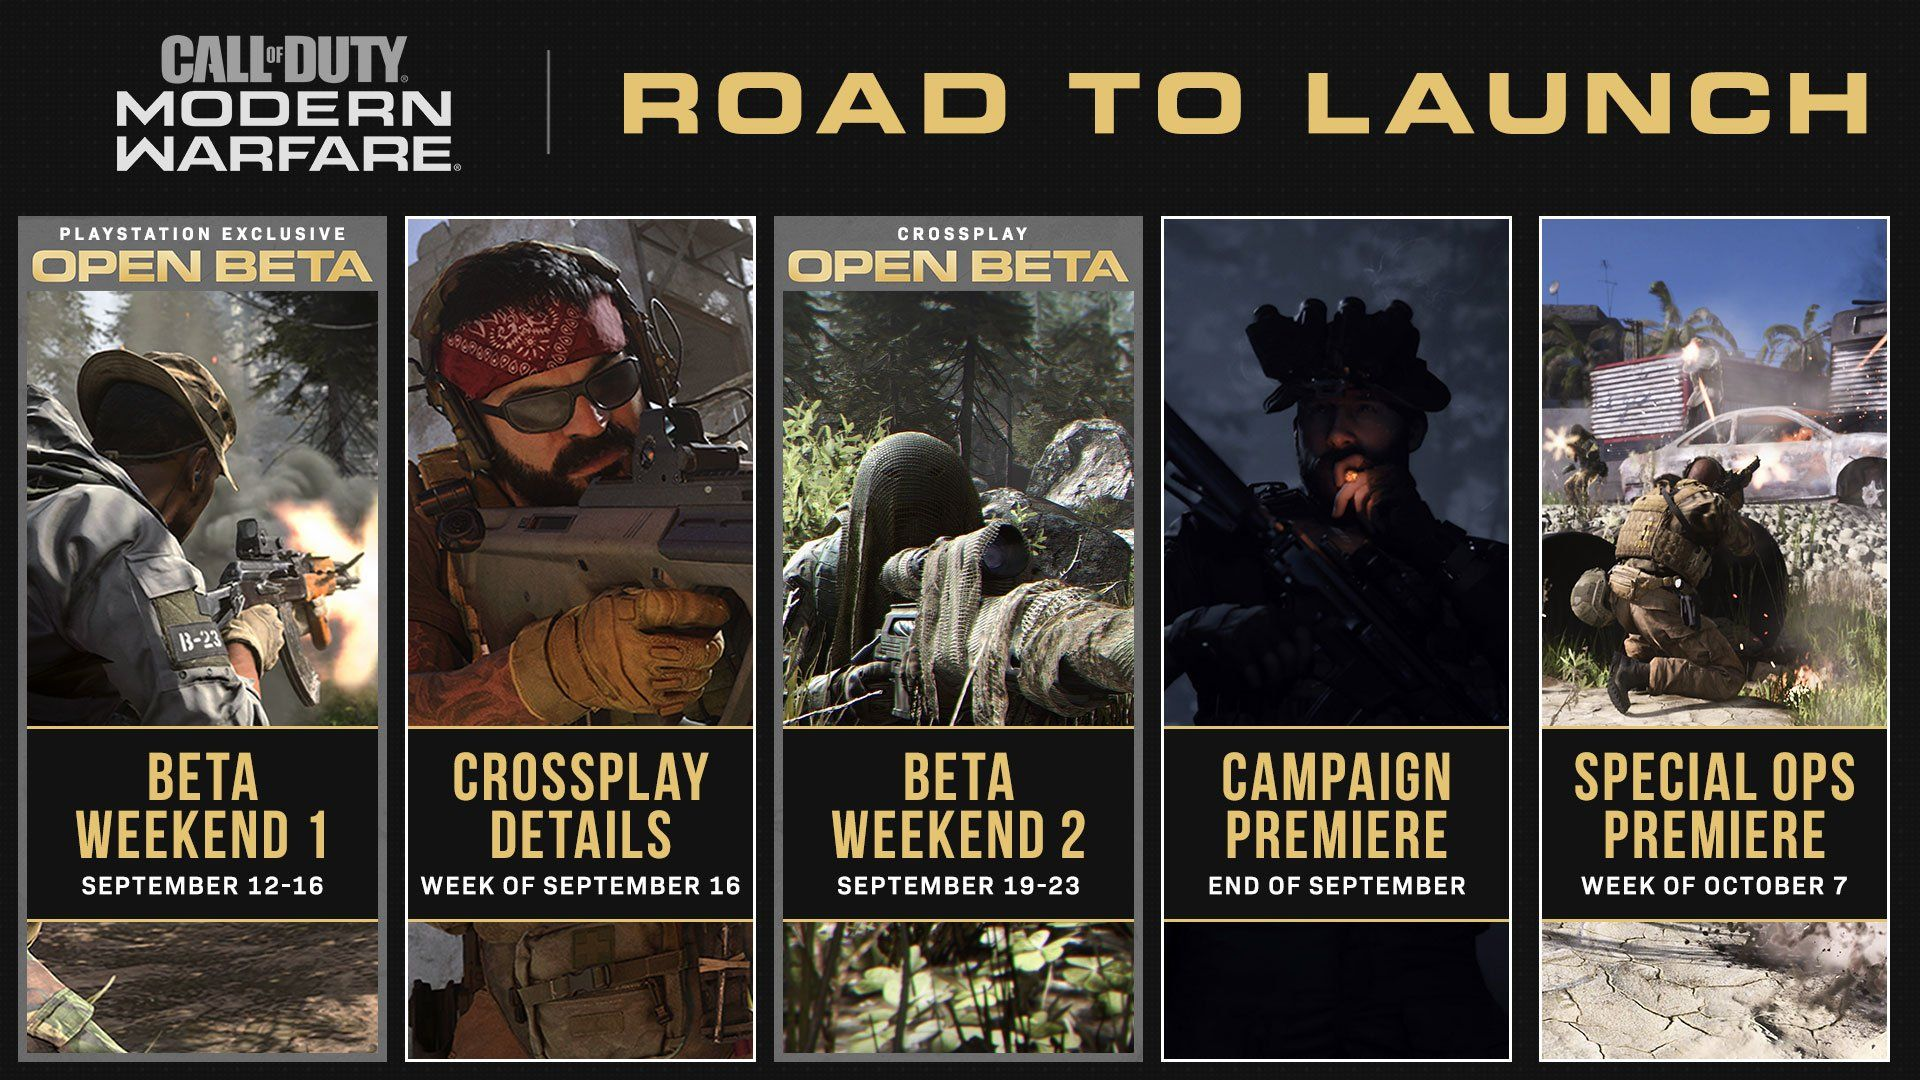 Call Of Duty Modern Warfare Launch Road Map Beta Details Cross Platform Play Campain Premiere And